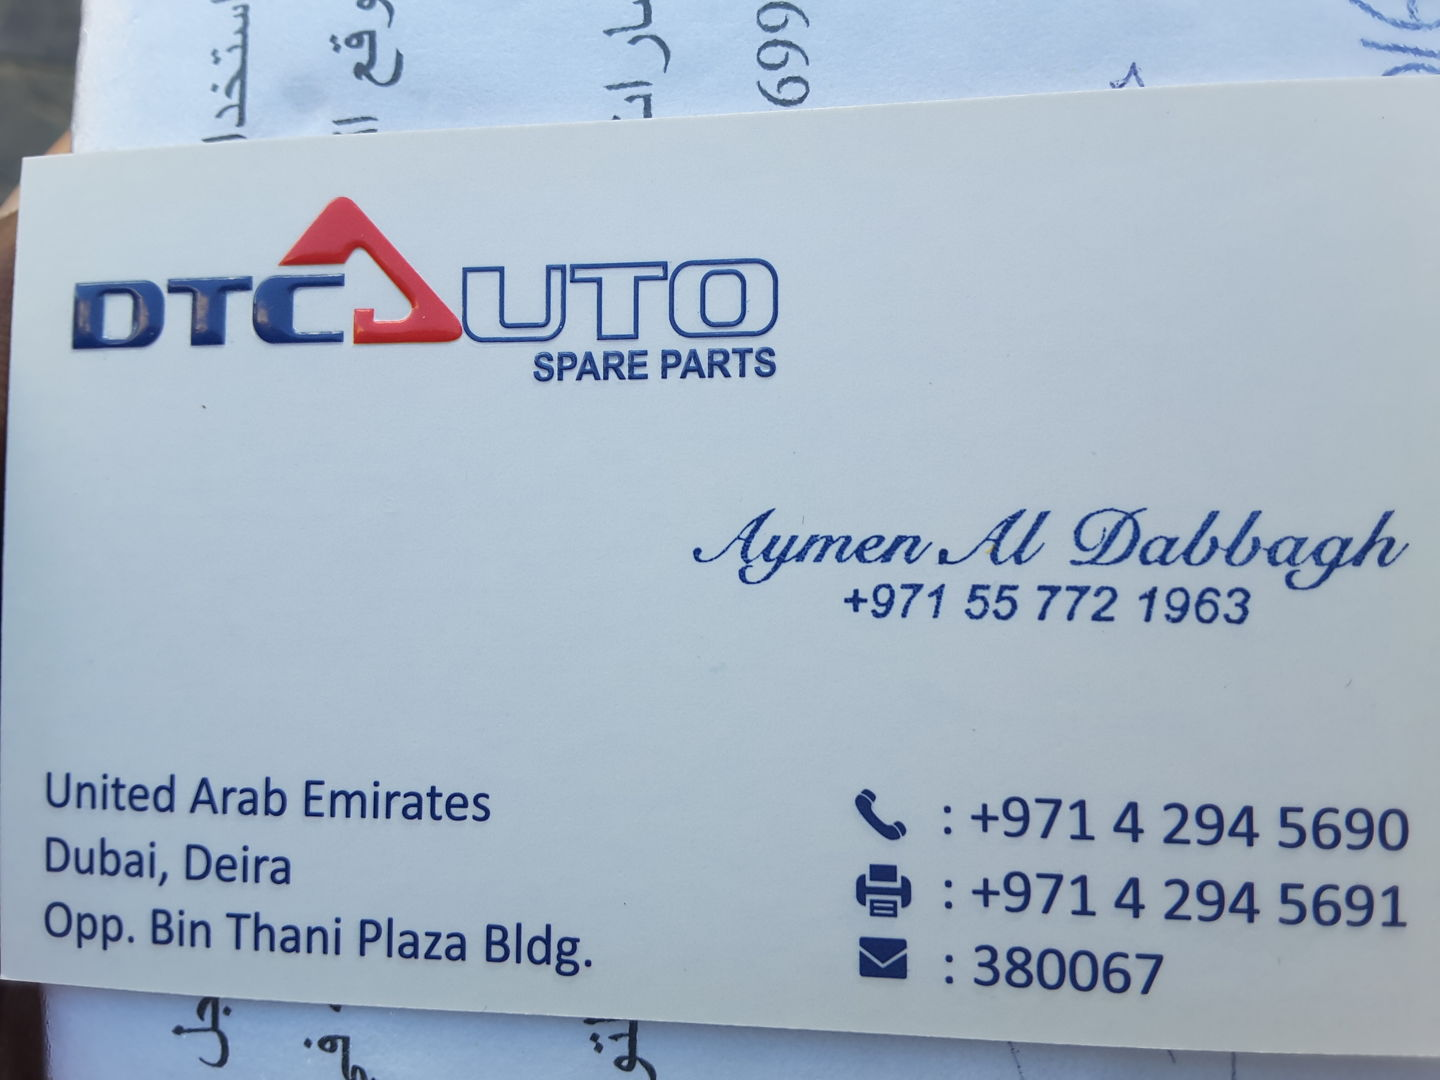 Walif-business-dtc-auto-spare-parts-trading